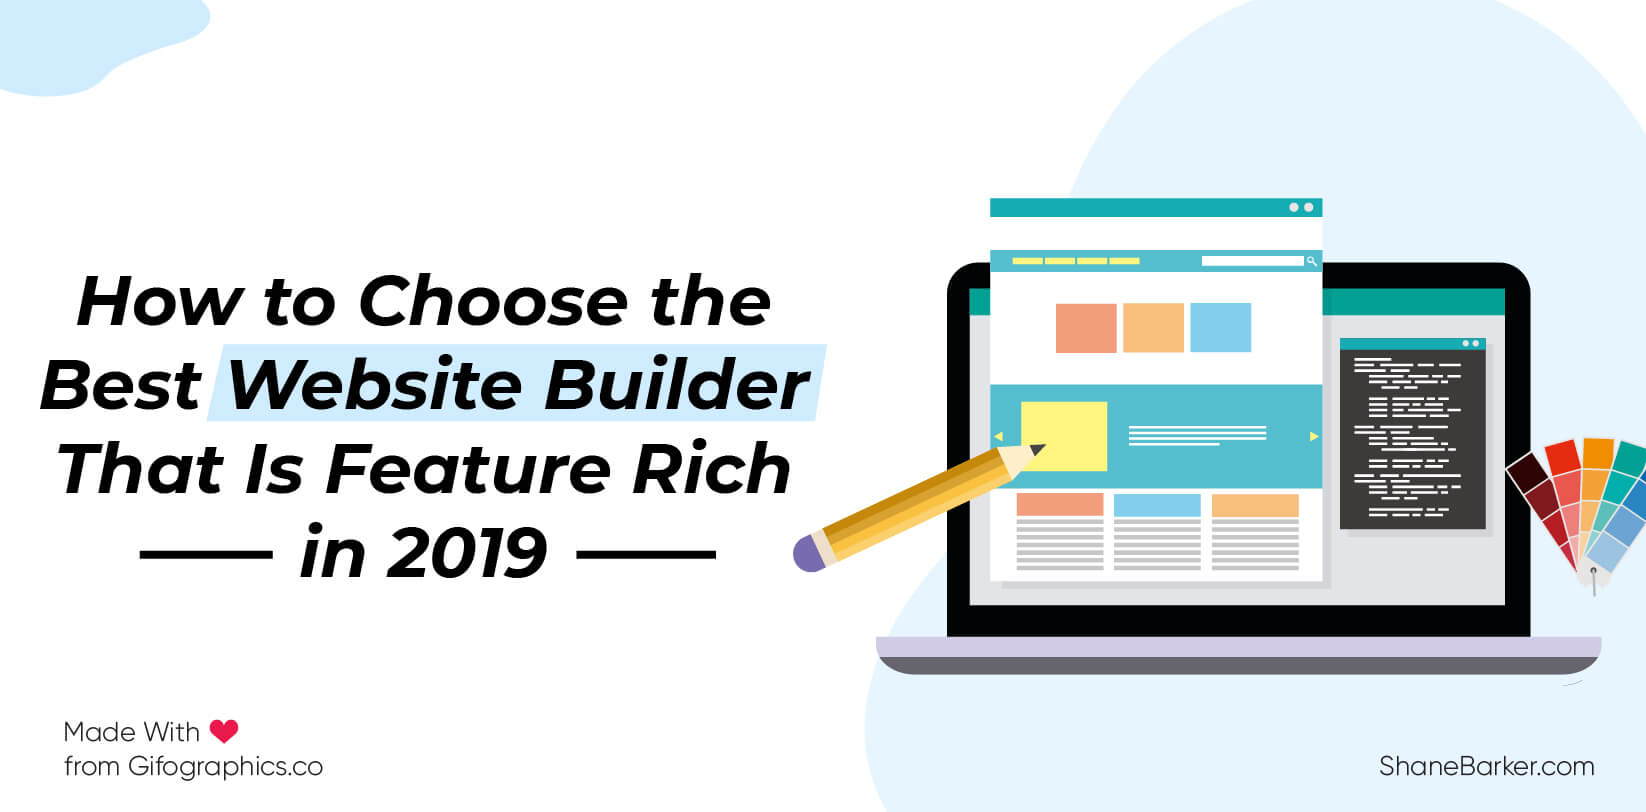 How to Choose the Best Website Builder That Is Feature Rich in 2019